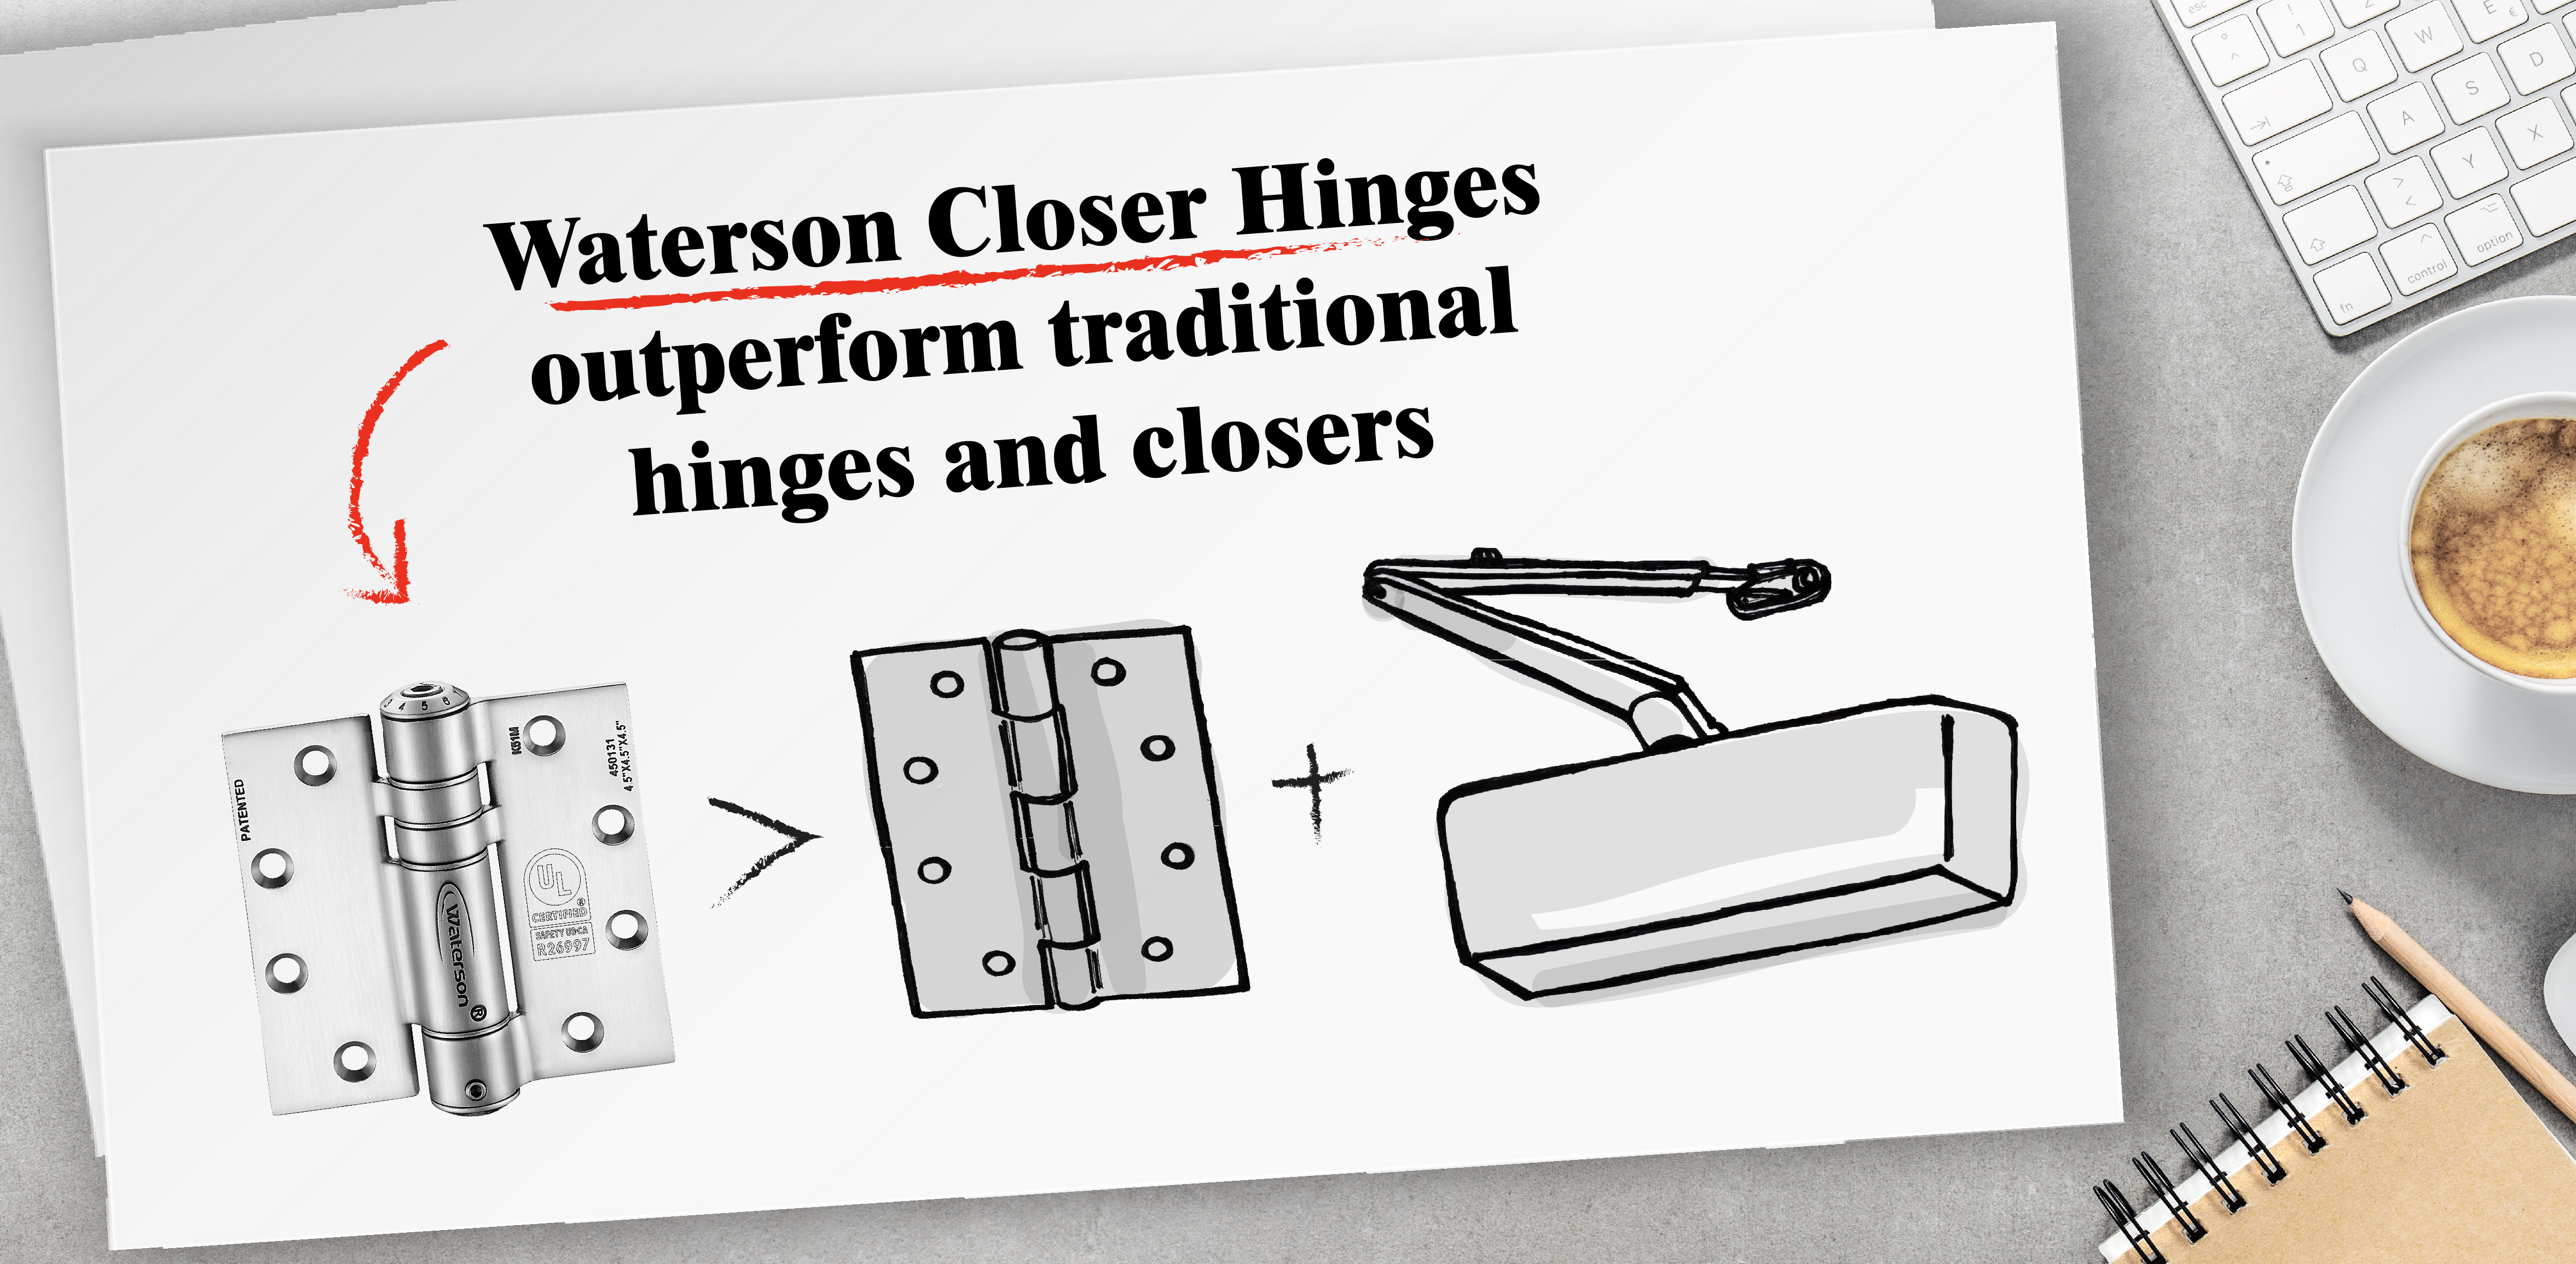 Waterson Closer Hinge